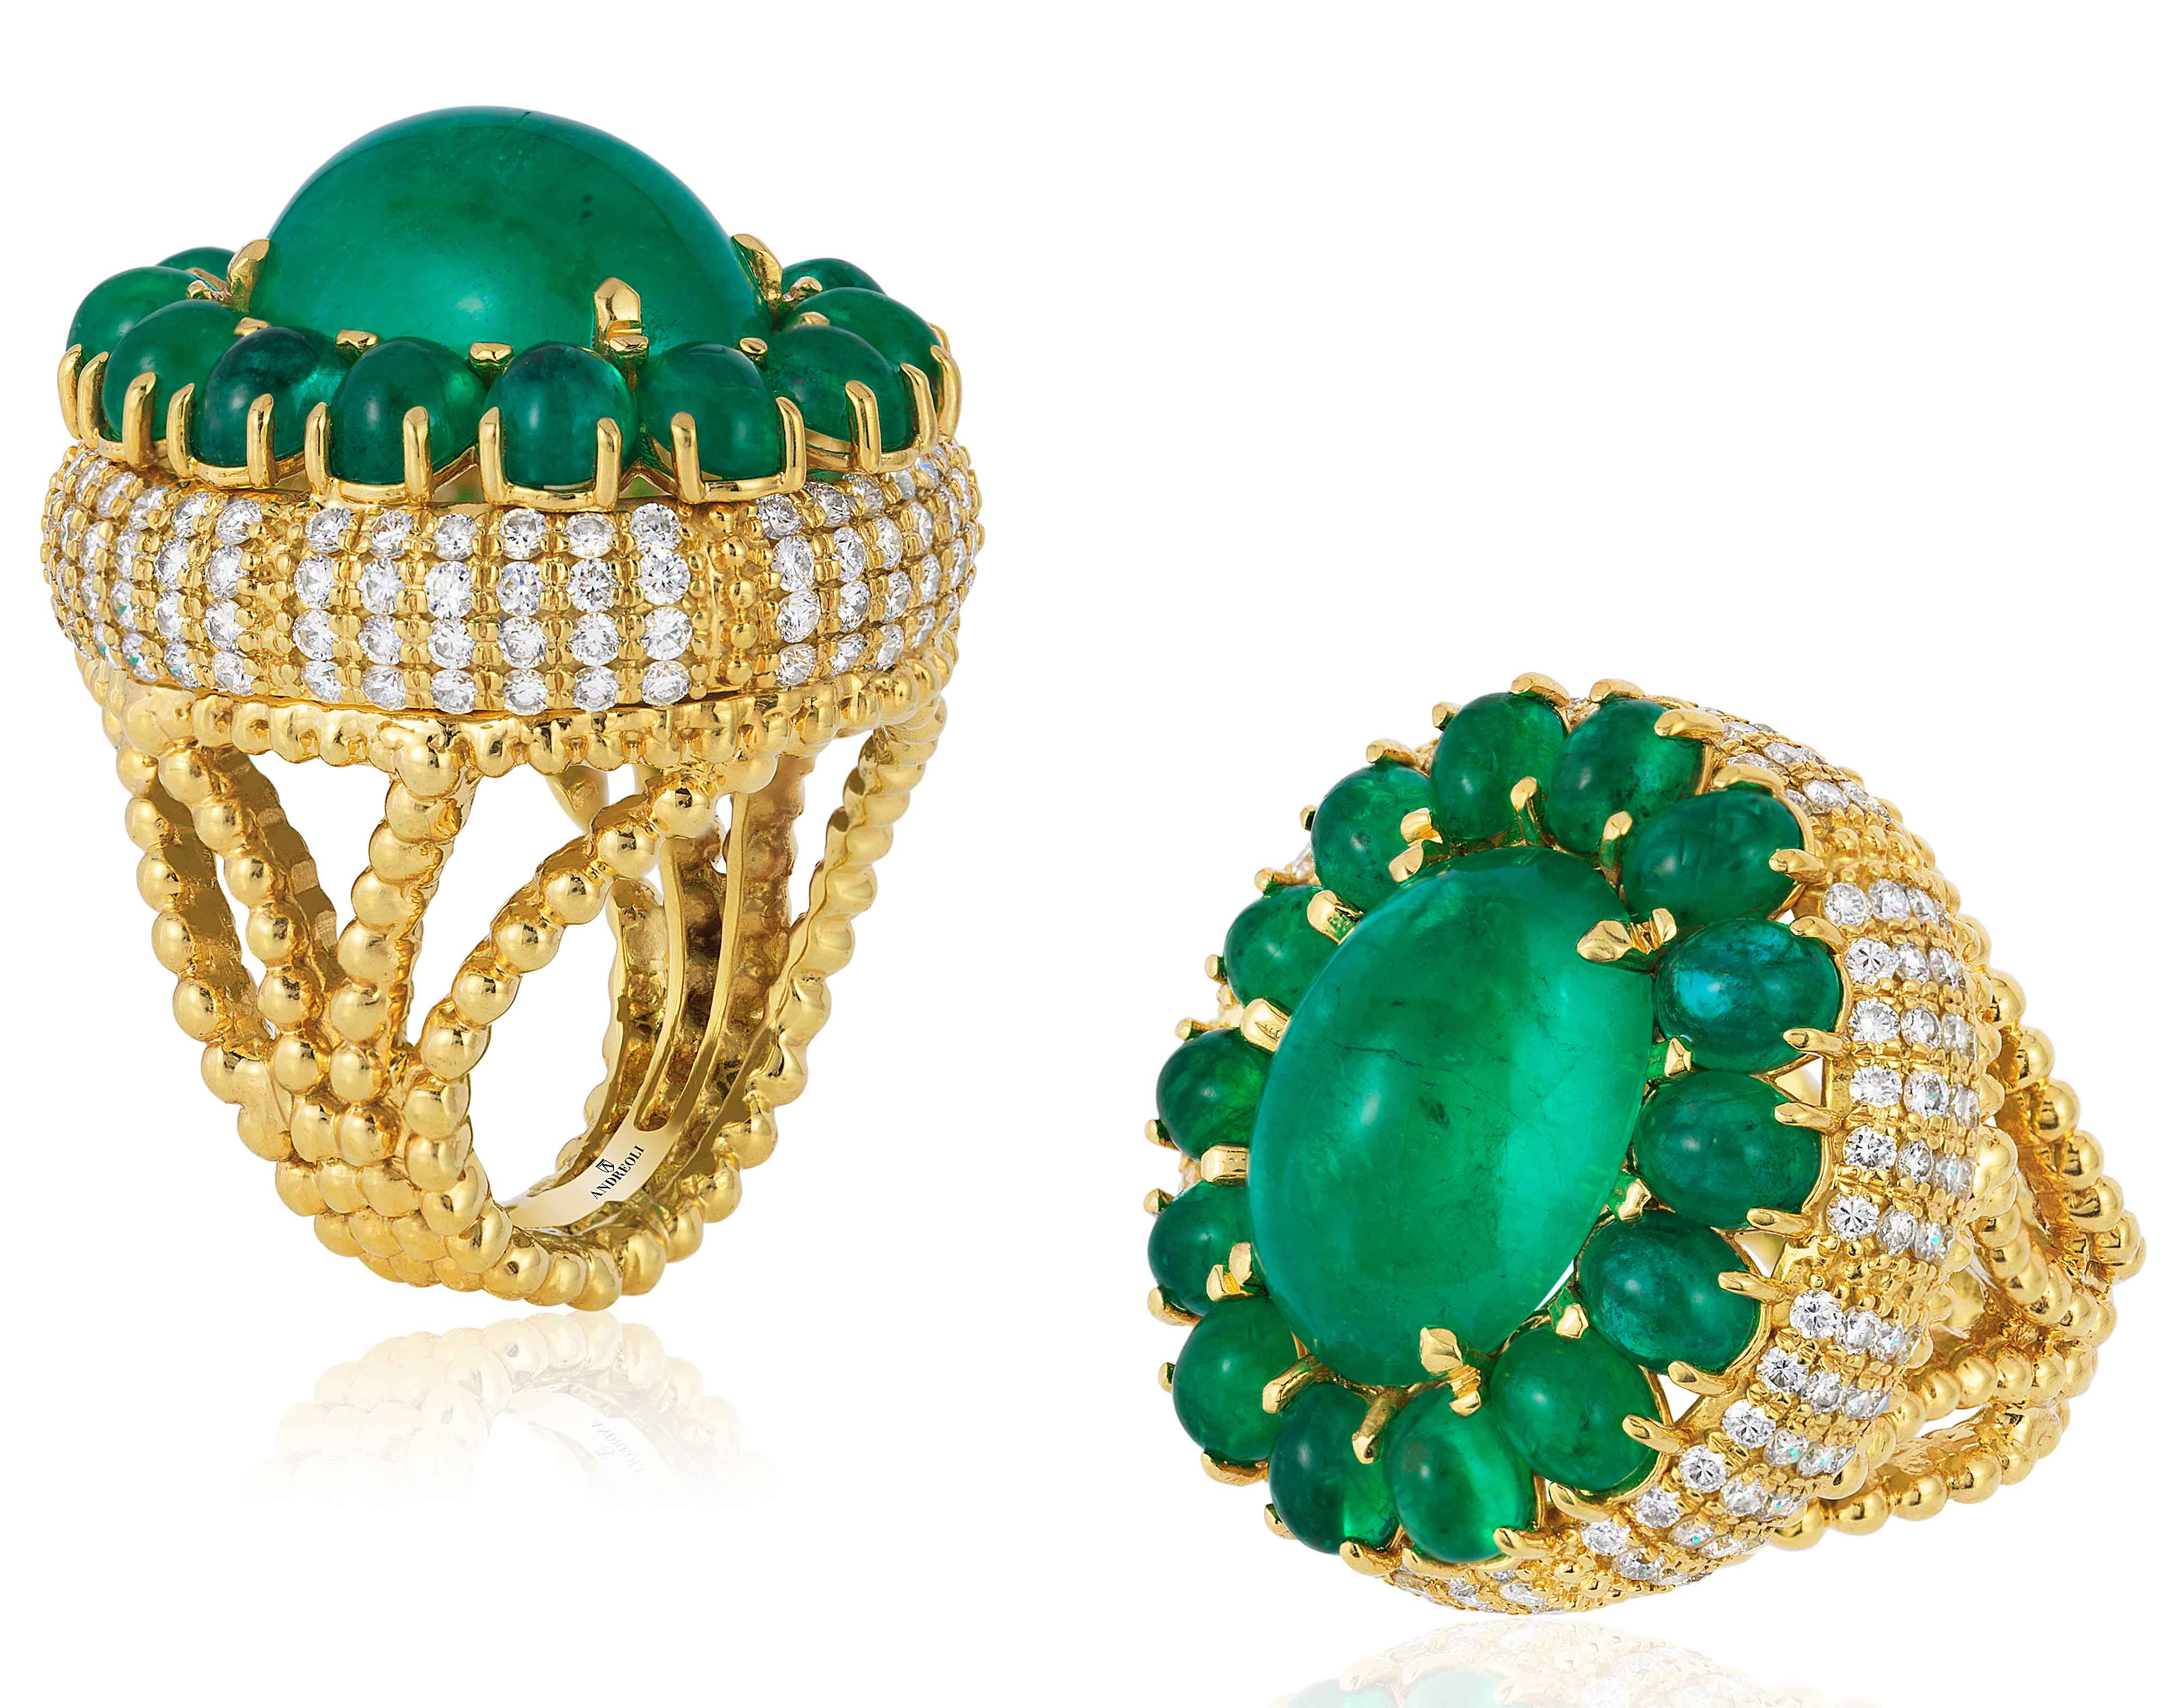 Yellow Gold Ring with Colombian Emerald Cabochons